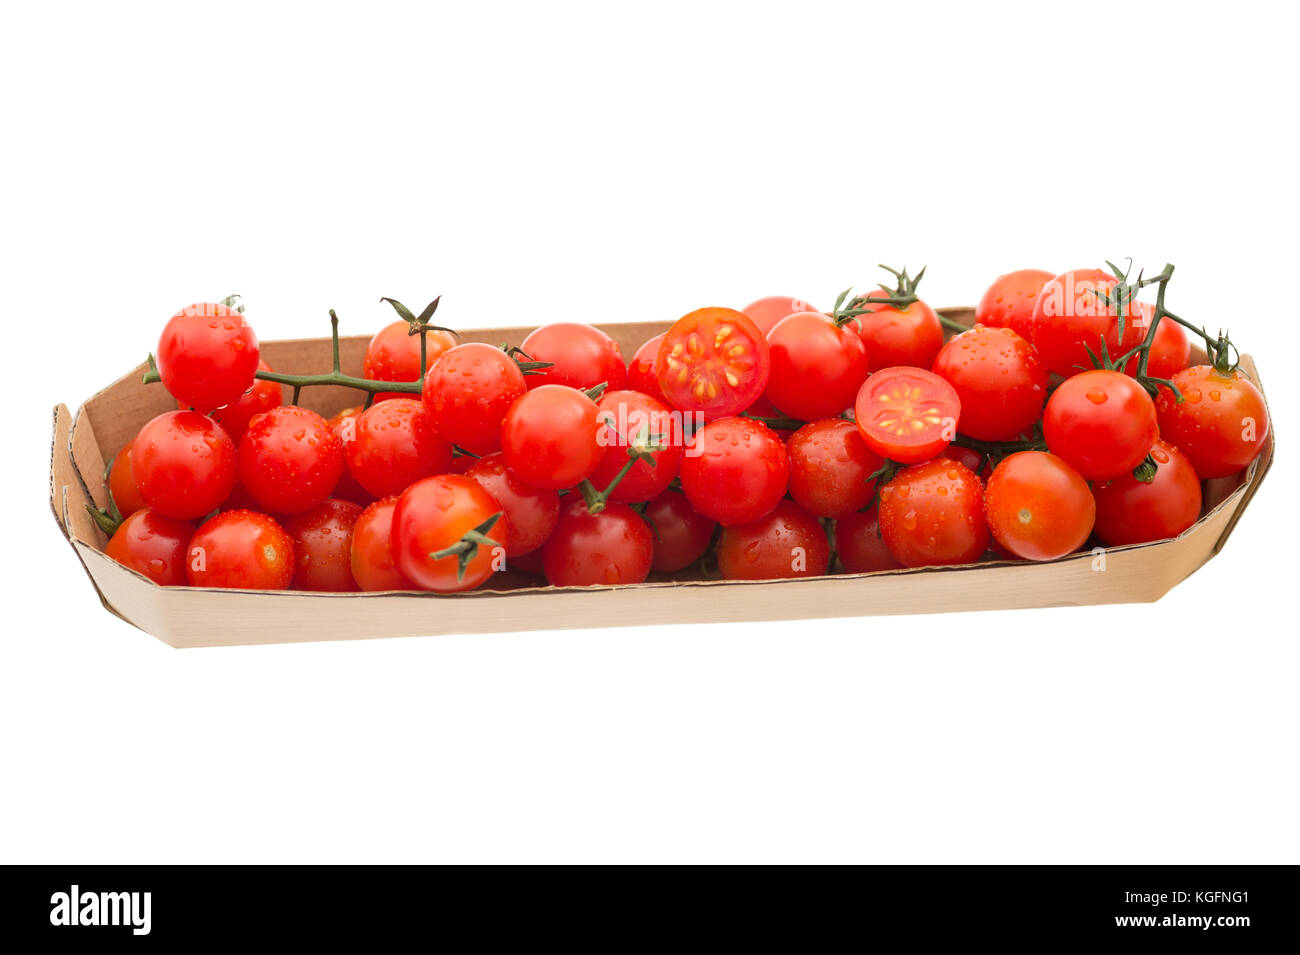 Fresh organic red cocktail tomatoes in a tray, isolated on white background.Stock Photo